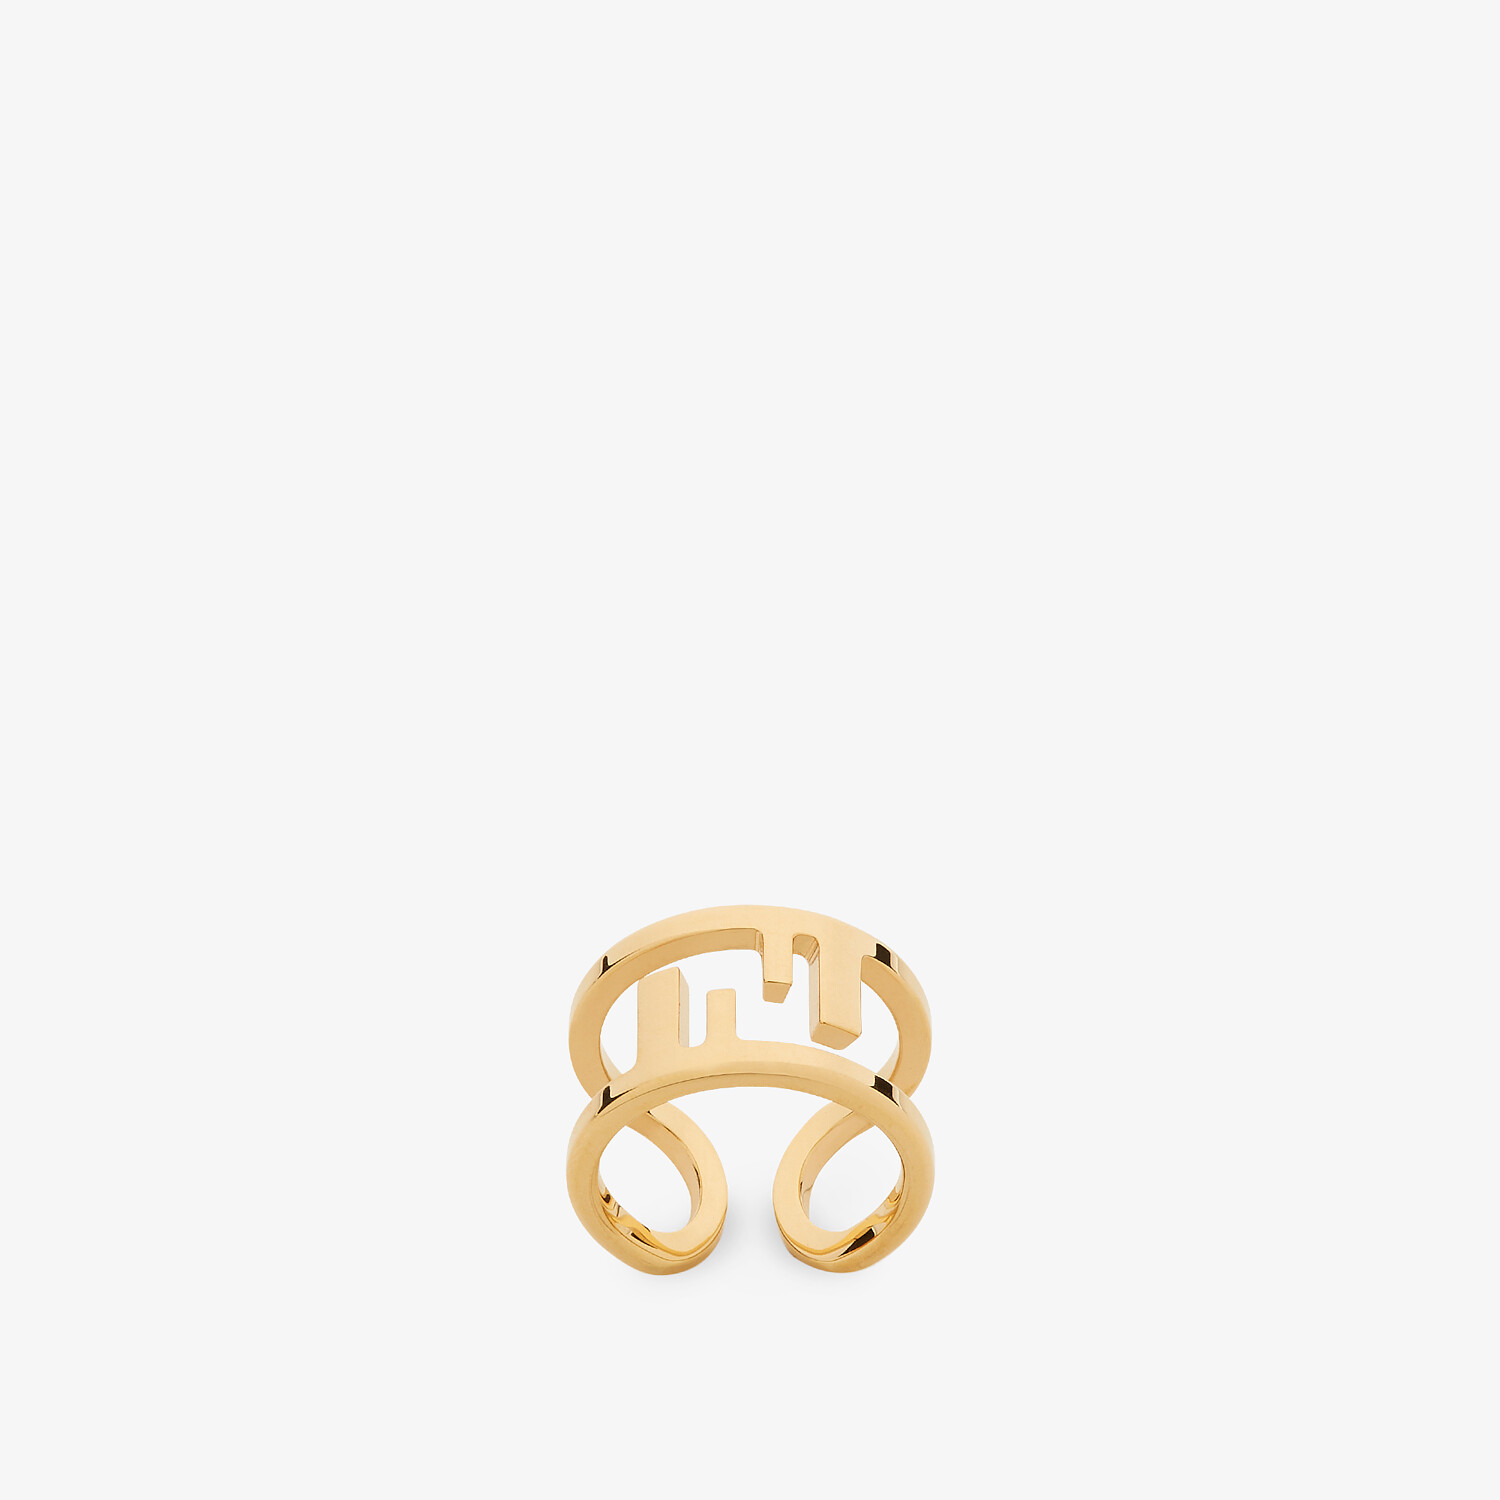 FENDI O'LOCK RING - Gold-colored ring - view 1 detail